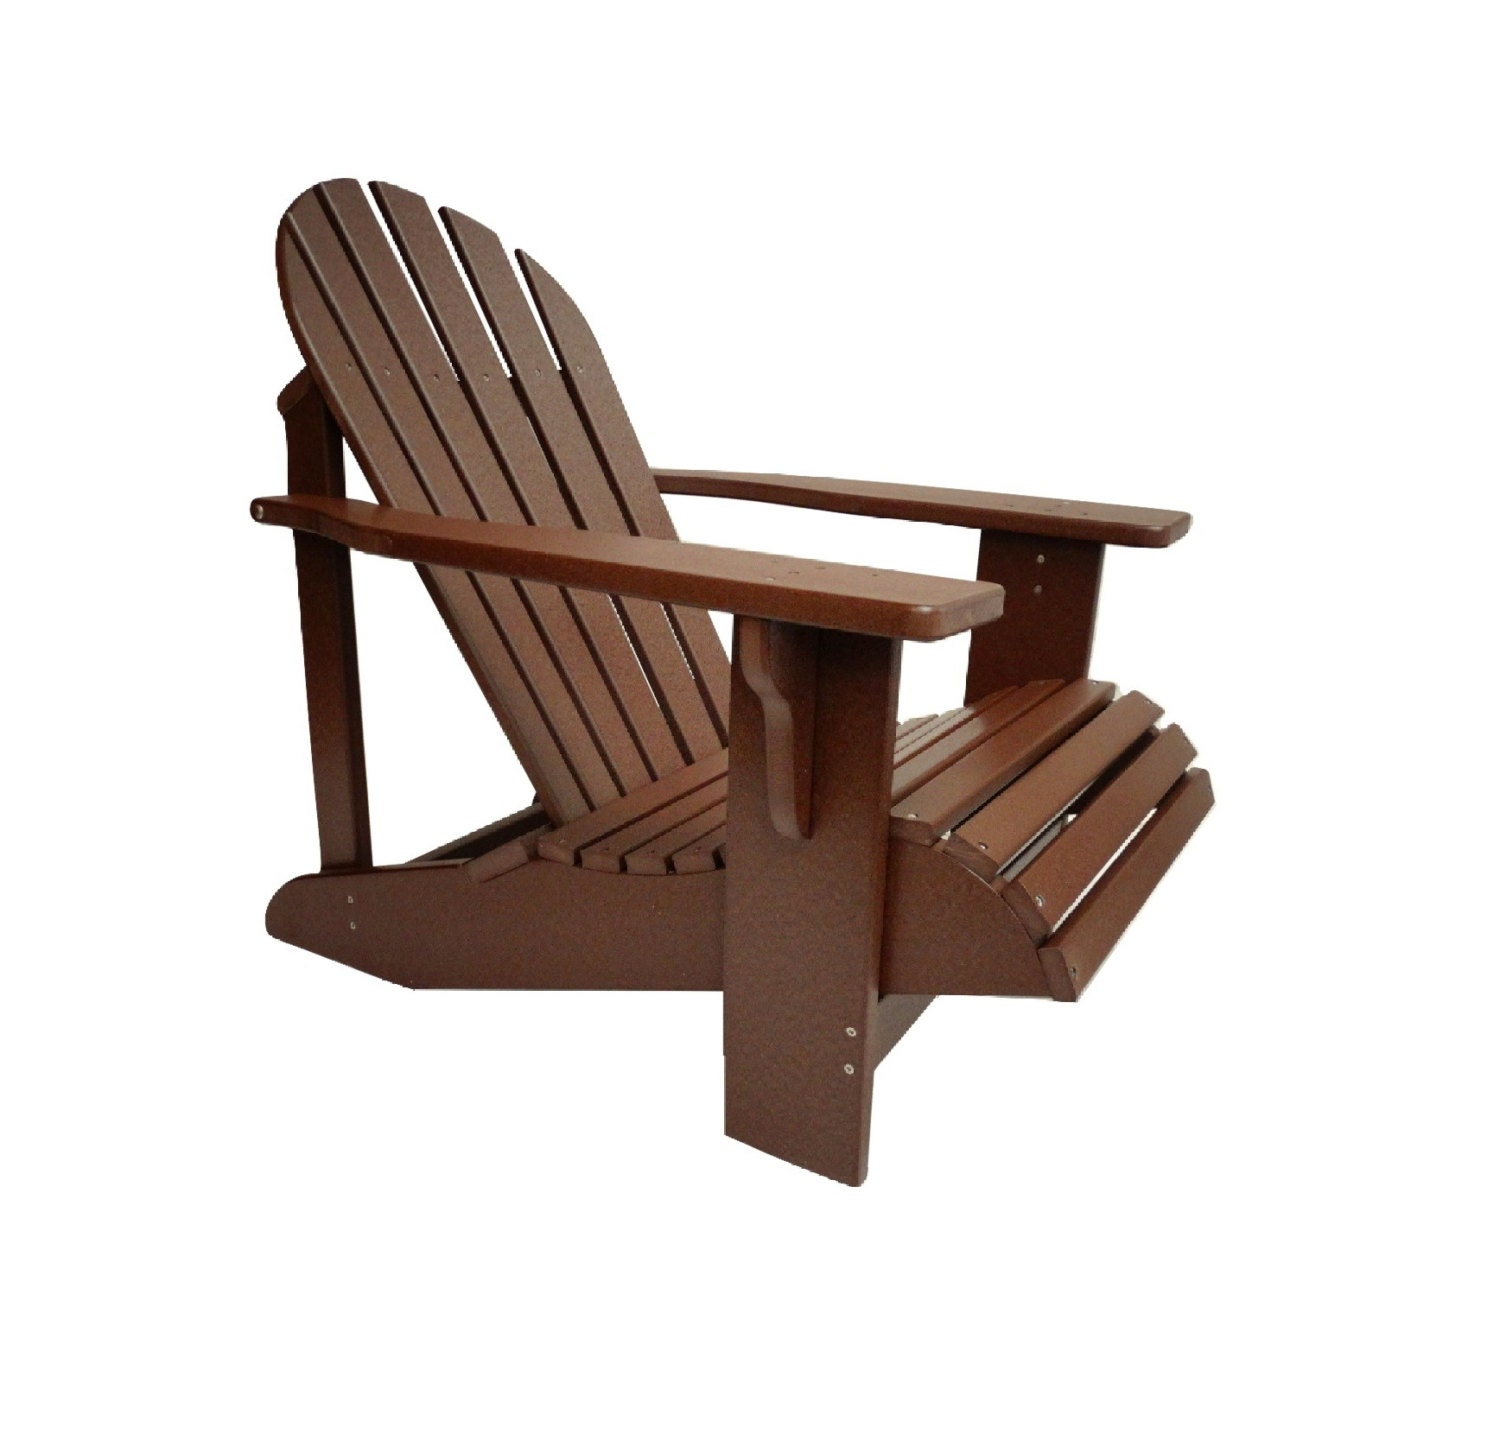 Adirondack chair in classic style made from by Composite adirondack chairs